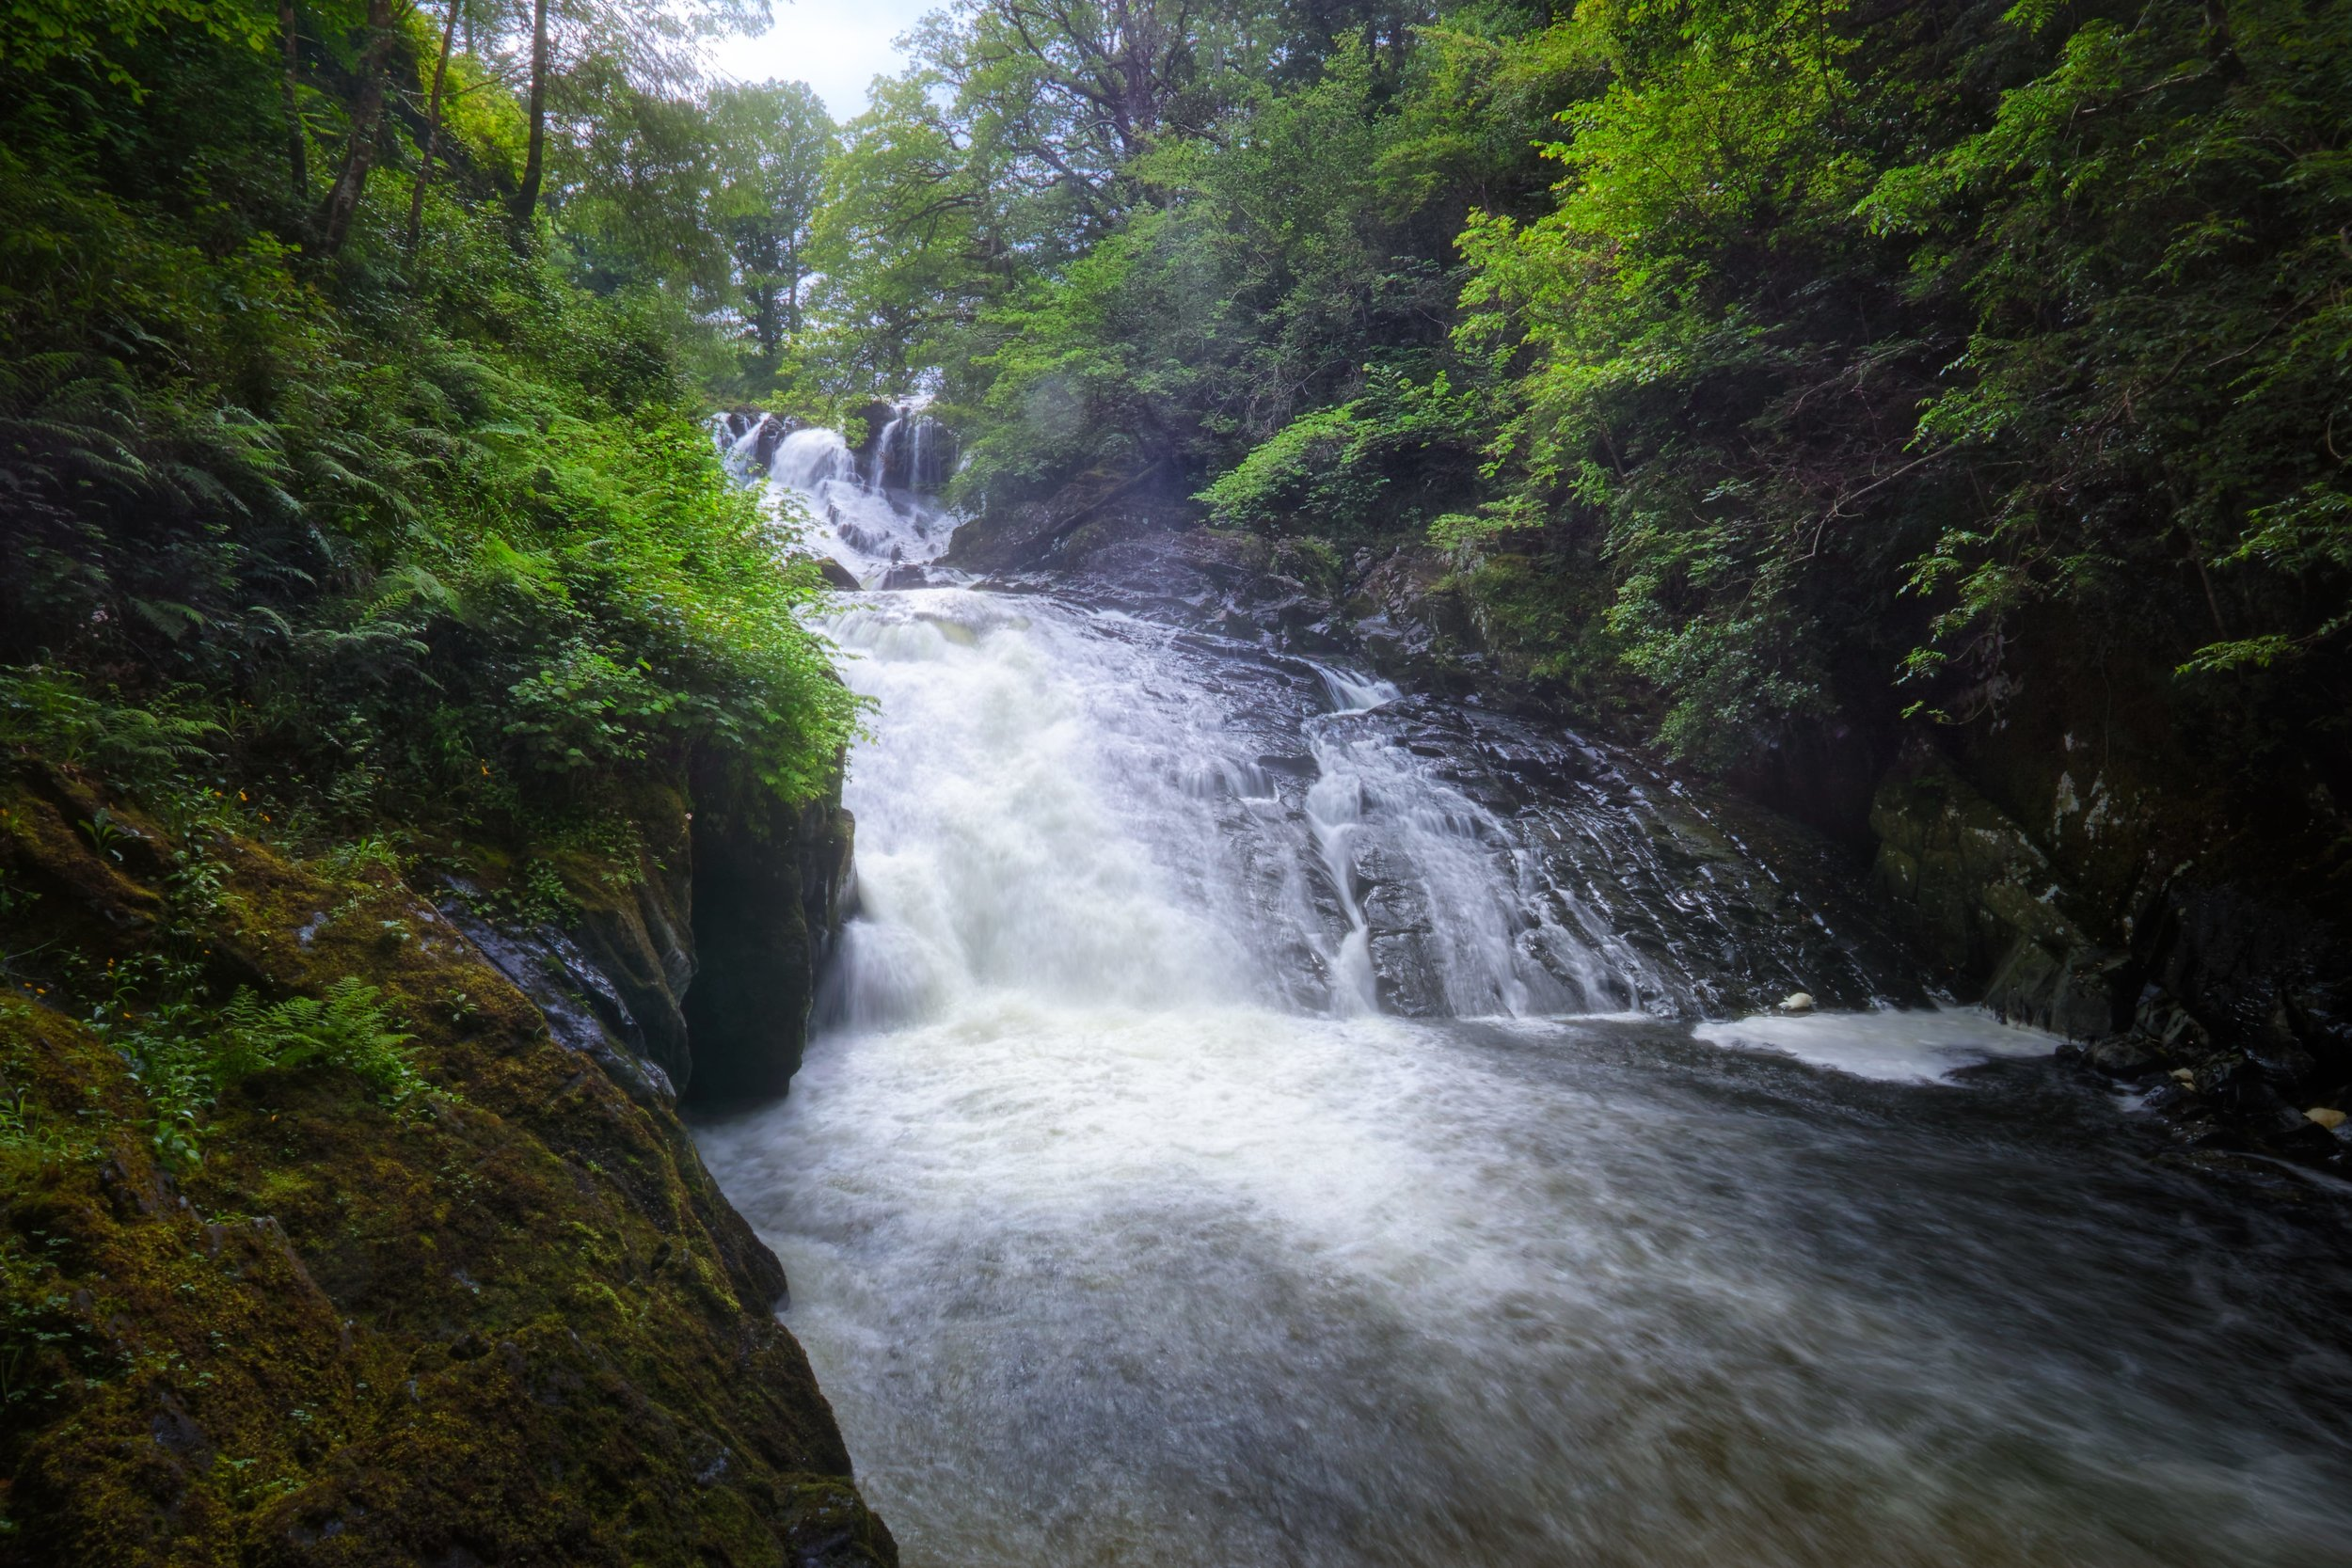 I would have to say that these falls are in my Top 5 British Waterfalls (that I've seen so far). Read the rest of this blog post here  https://www.iancylkowski.com/blog/2019/6/25/appropriately-named